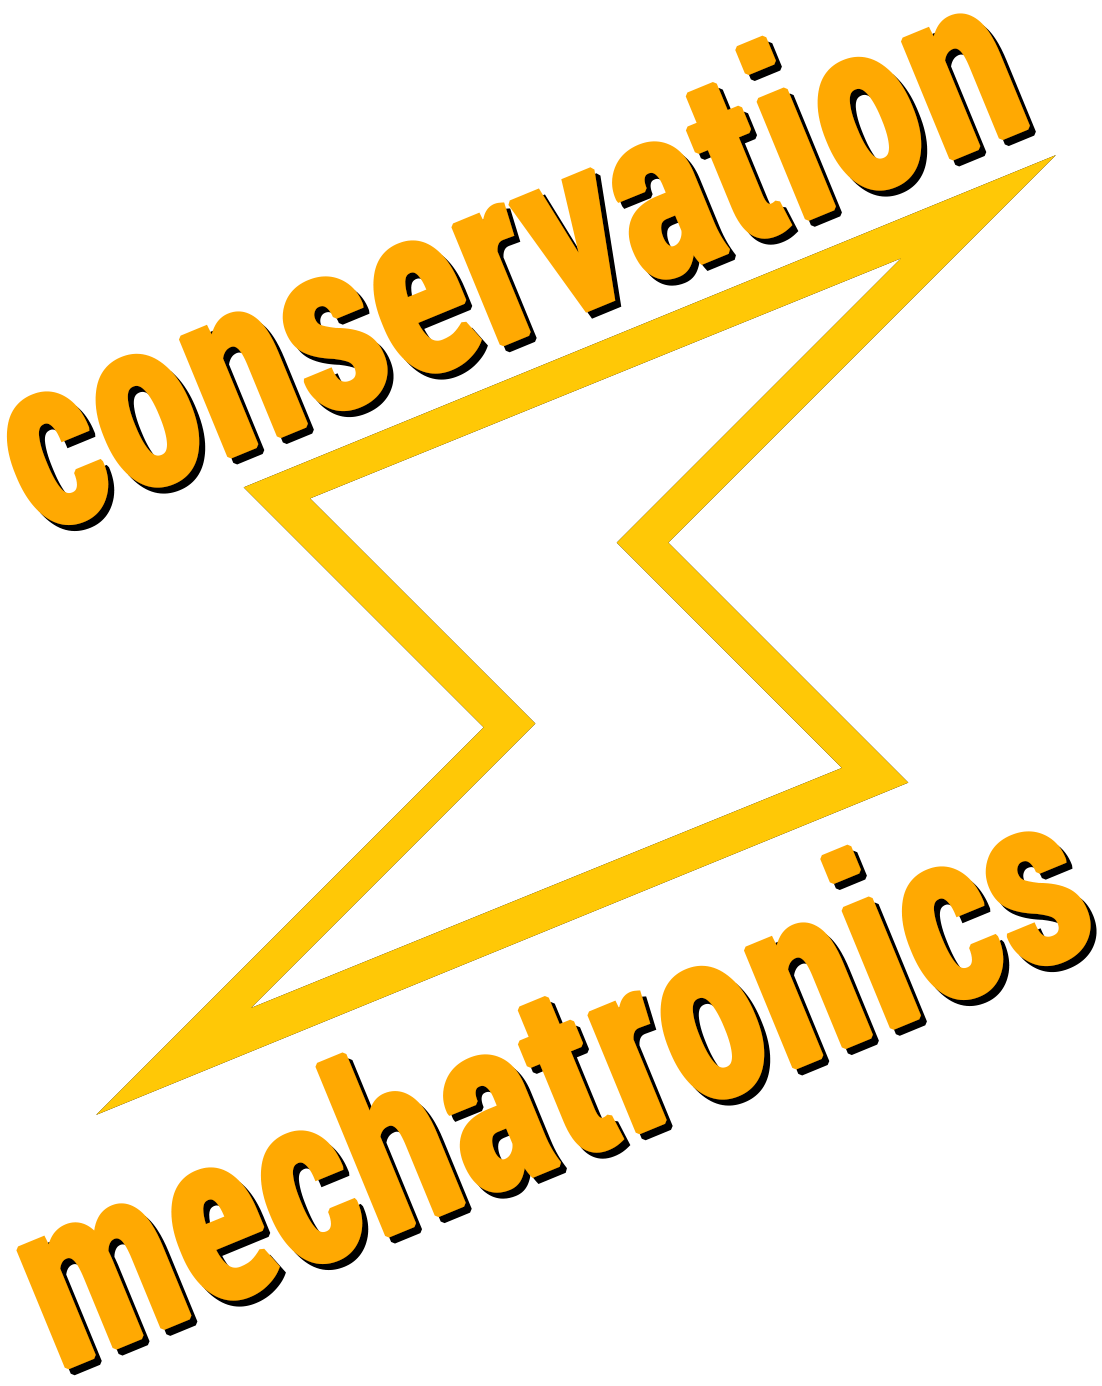 Conservation Mechatronics